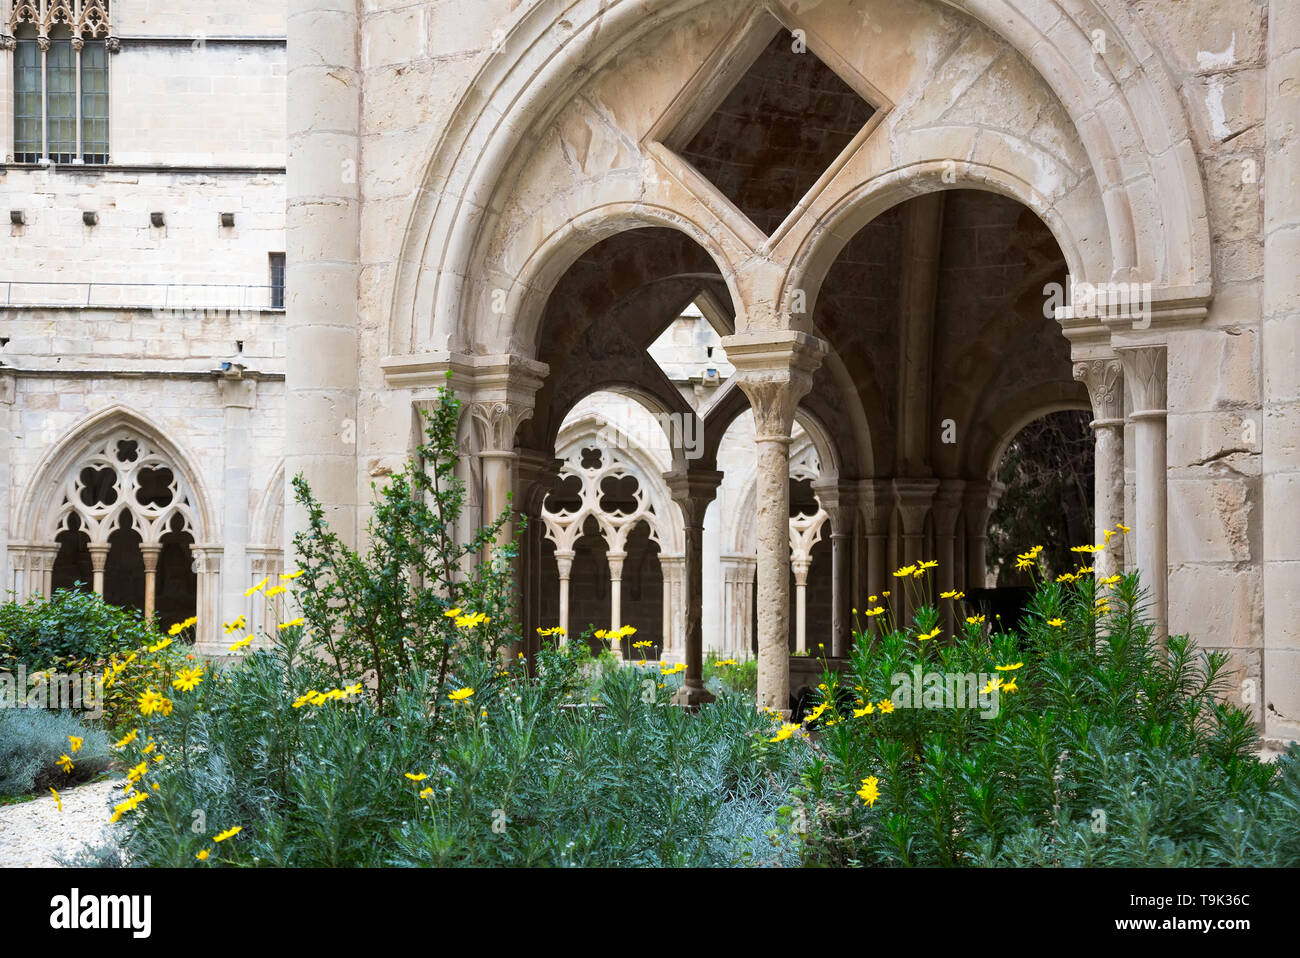 Picturesque inner court of Poblet Monastery at day in Catalonia - Stock Image